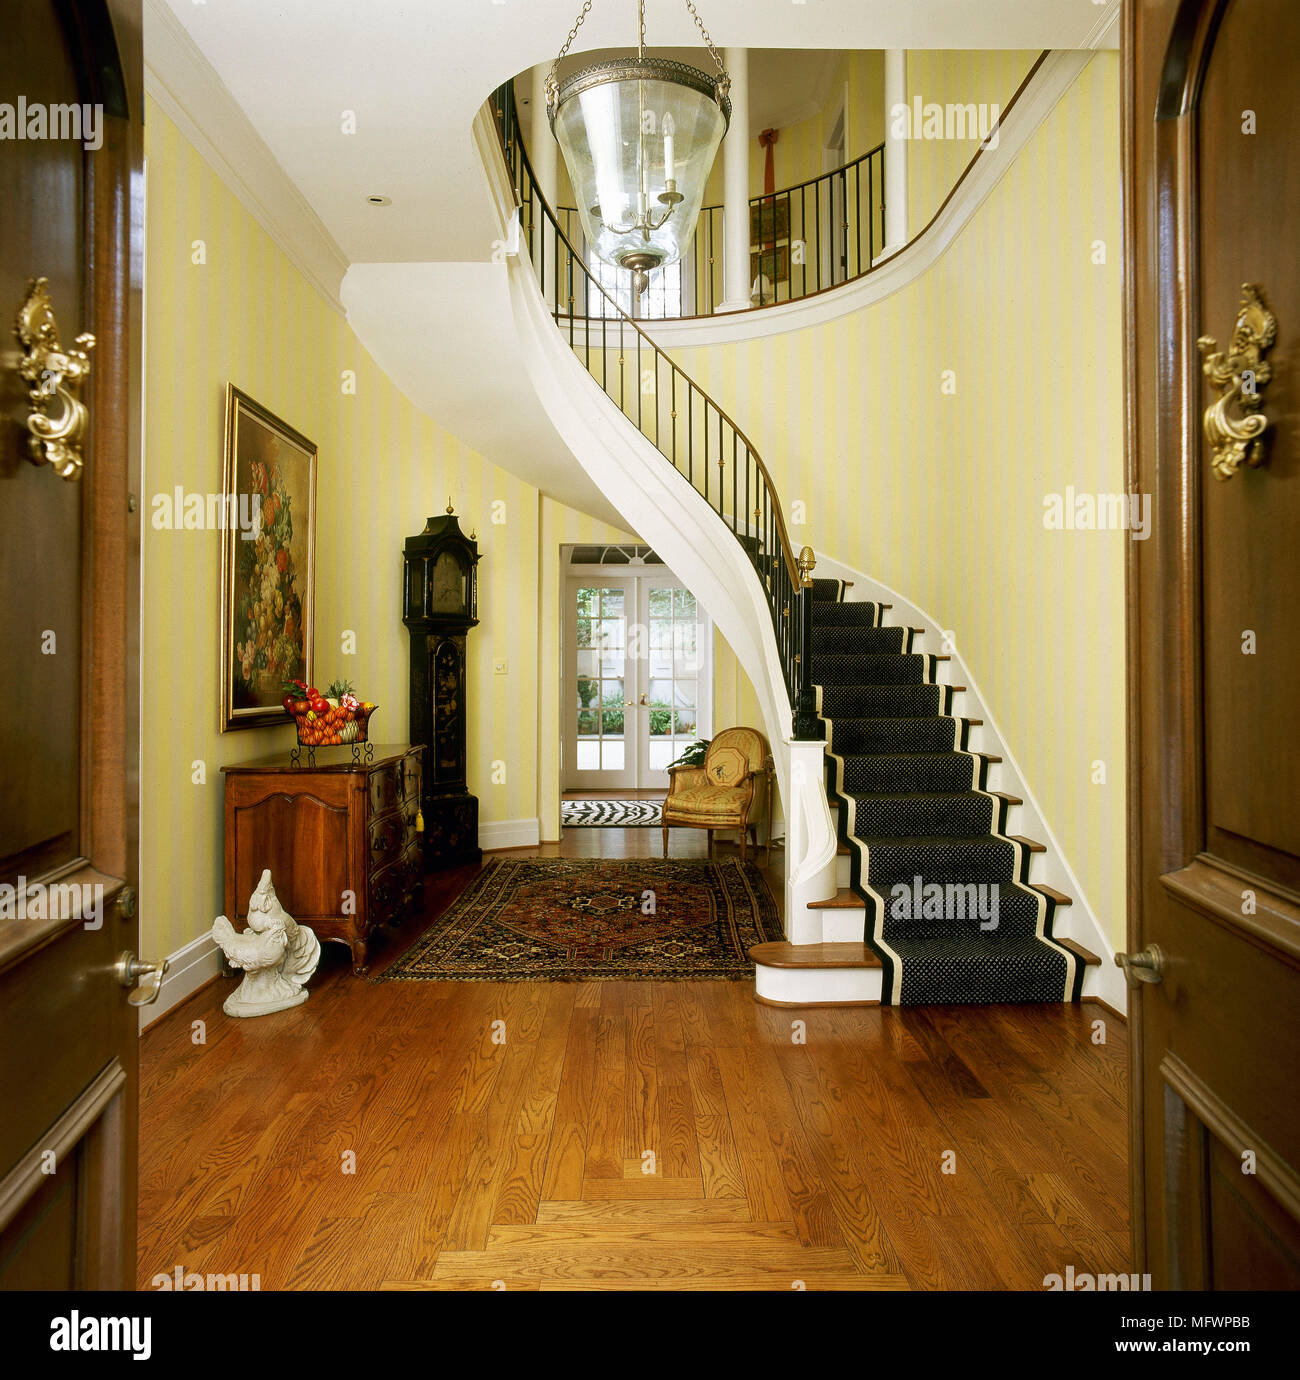 yellow hallway and front door entrance with curving staircase and